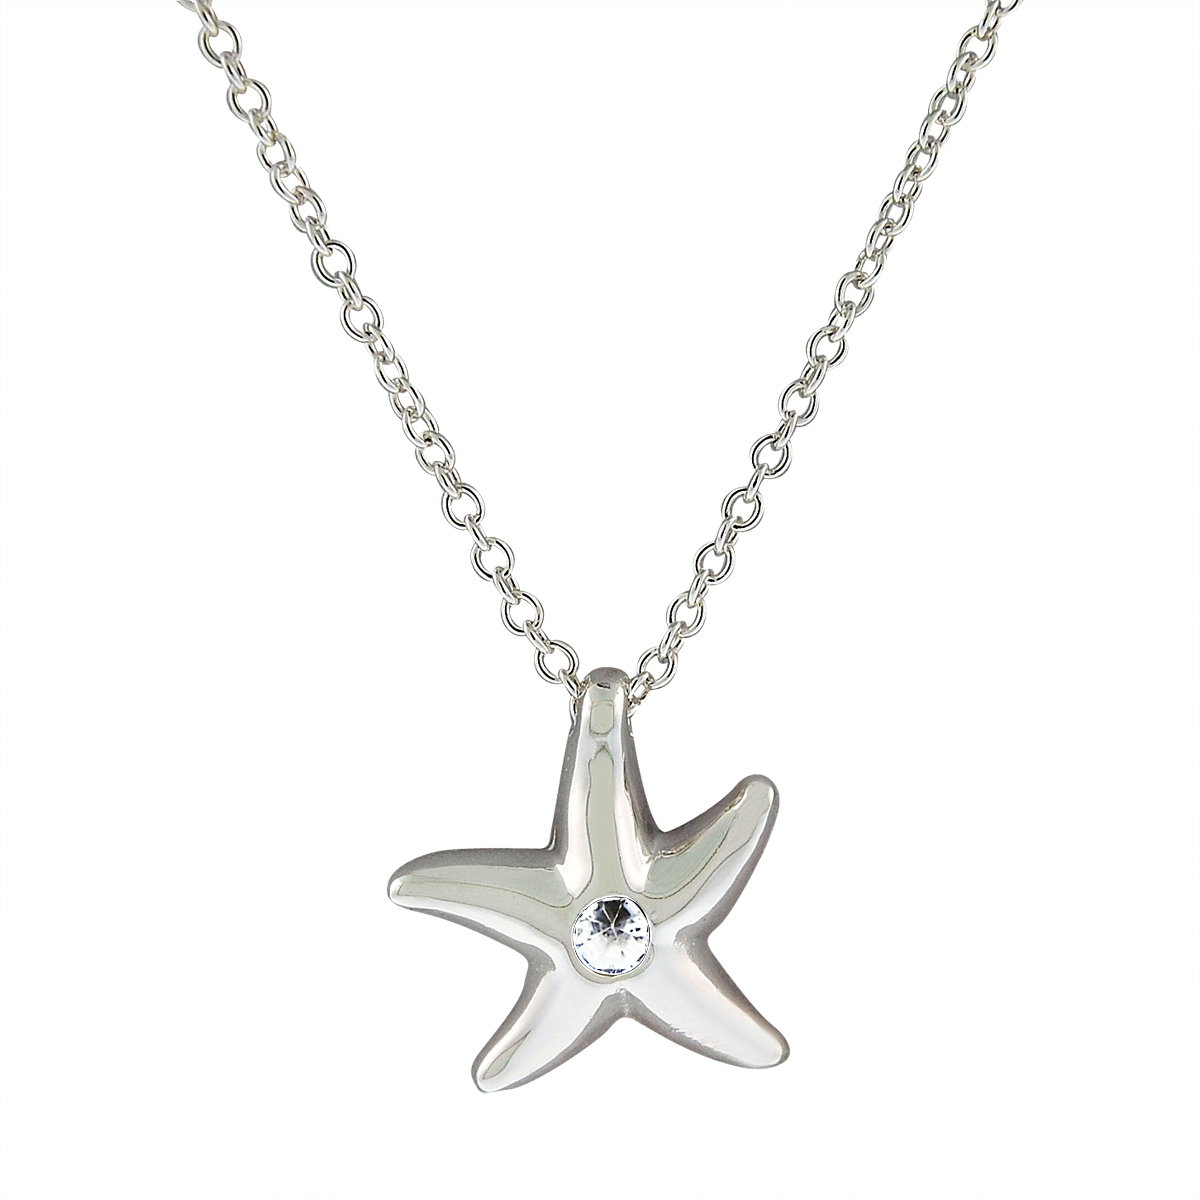 Sterling_Silver_Star_Fish_Necklace_With_Simulated_Diamond_In_Center